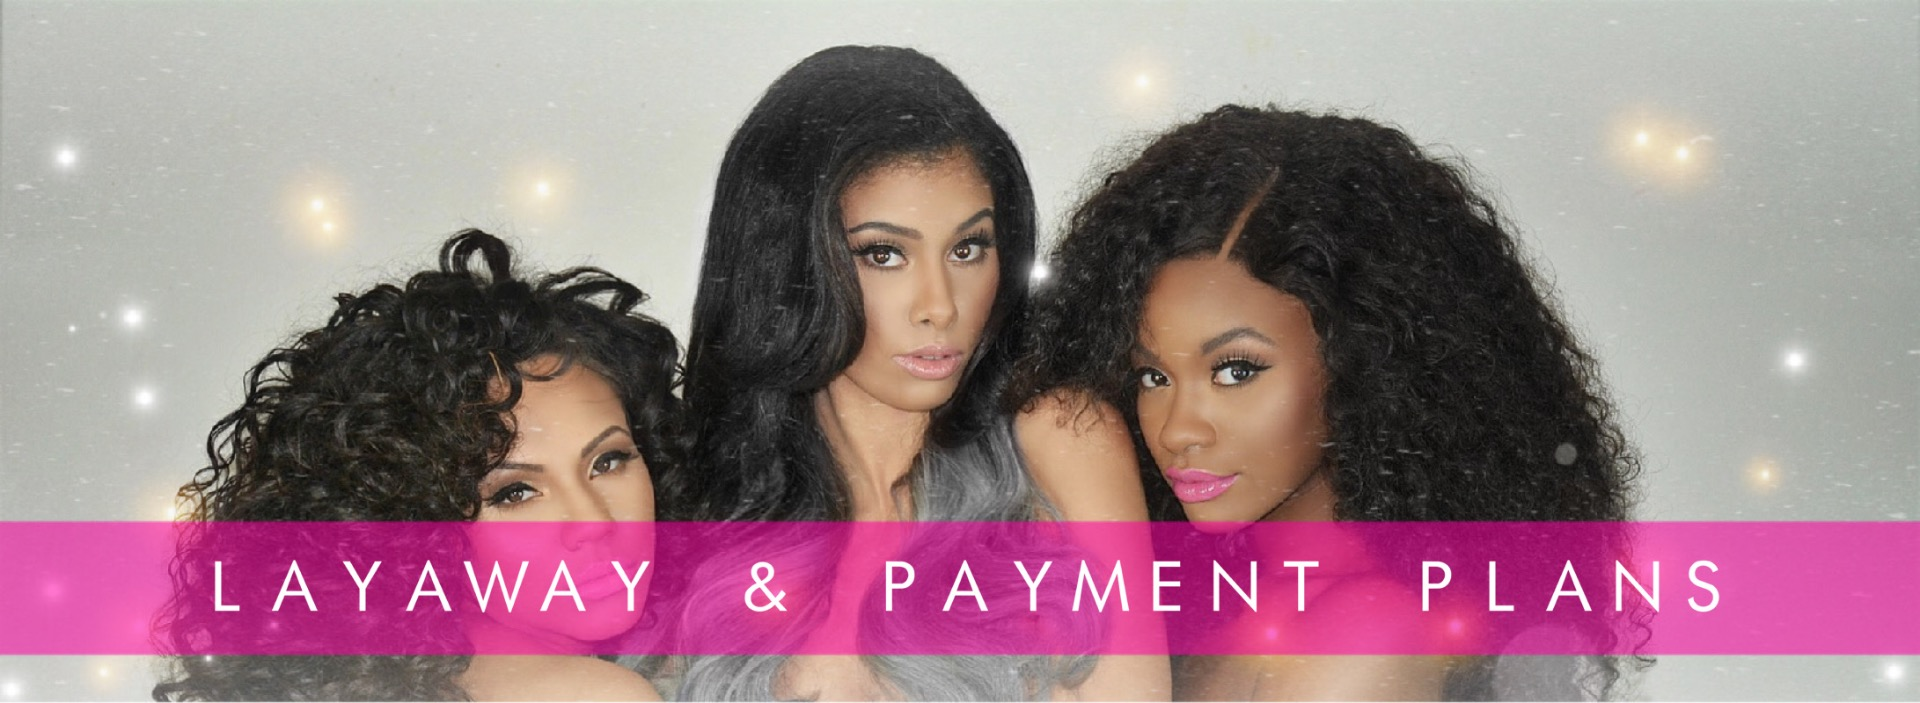 Layaway & Payment Plans